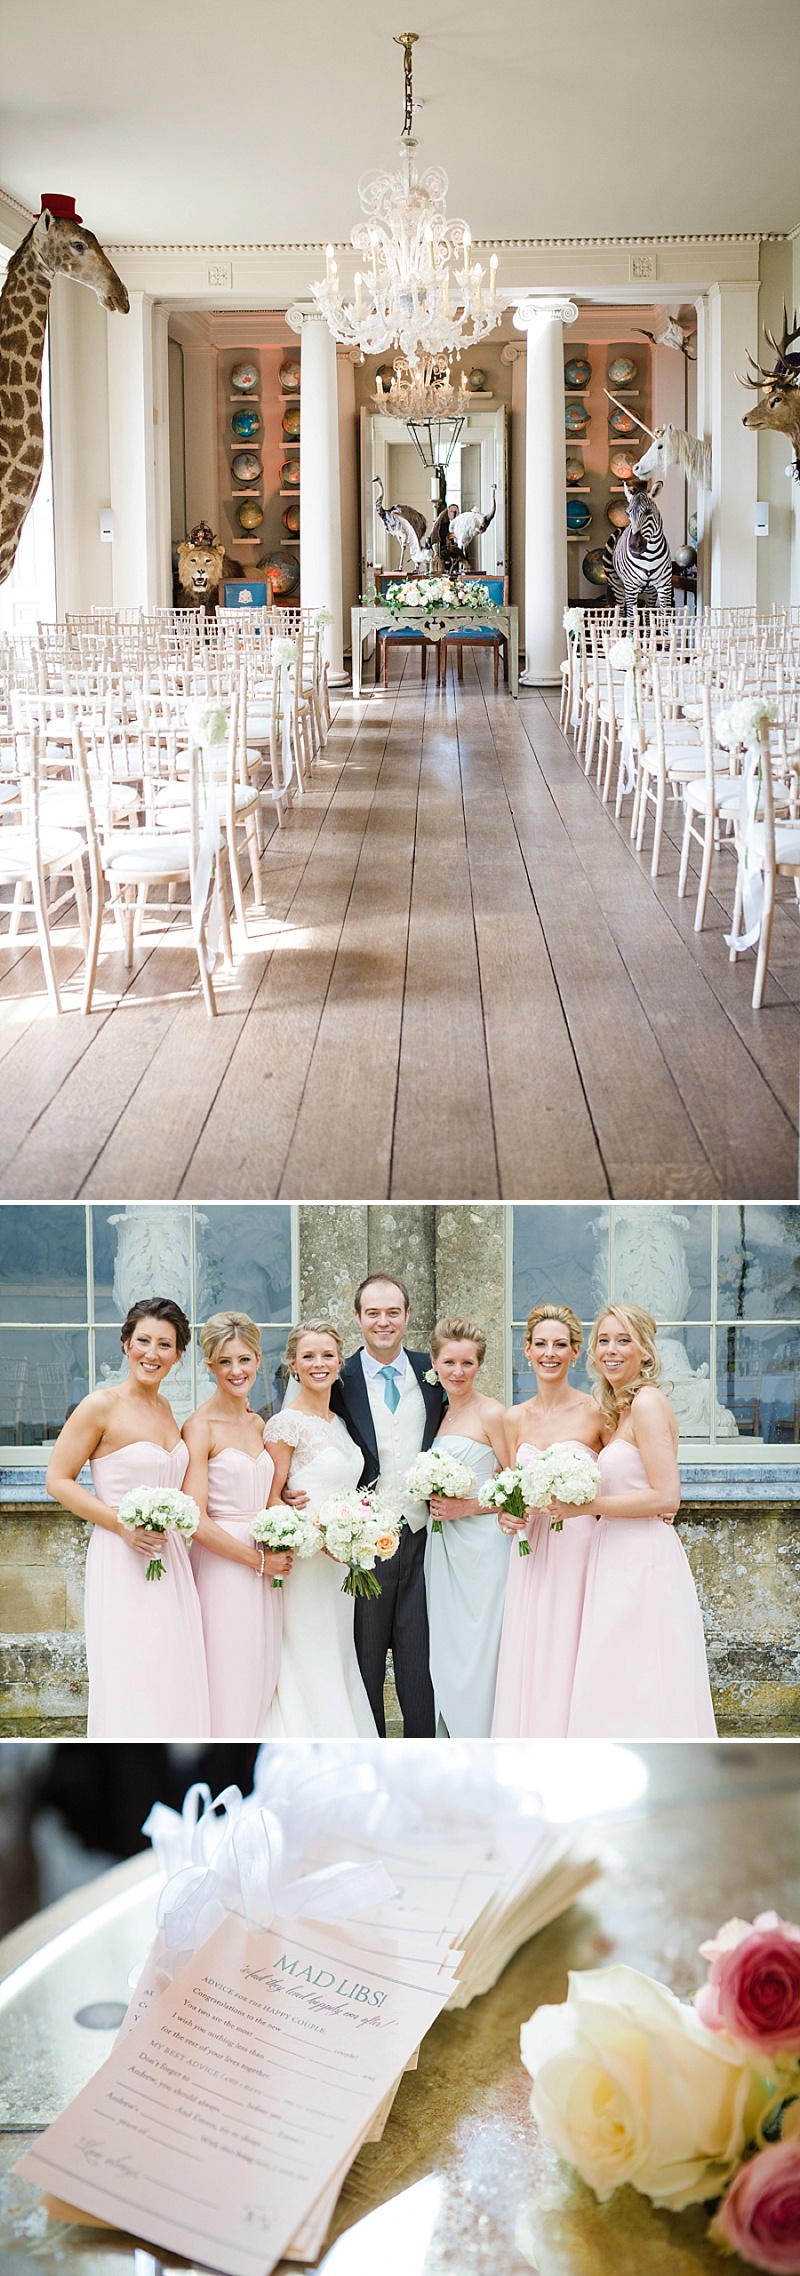 Elegant Wedding At Aynhoe Park With A Pastel Colour Scheme And Bride In A Lace Cap Sleeved Augusta Jones Dress For The Ceremony And A Sequinned Jenny Packham Gown For The Reception And Bridesmaids In Pink Dresses From Ted Baker 5